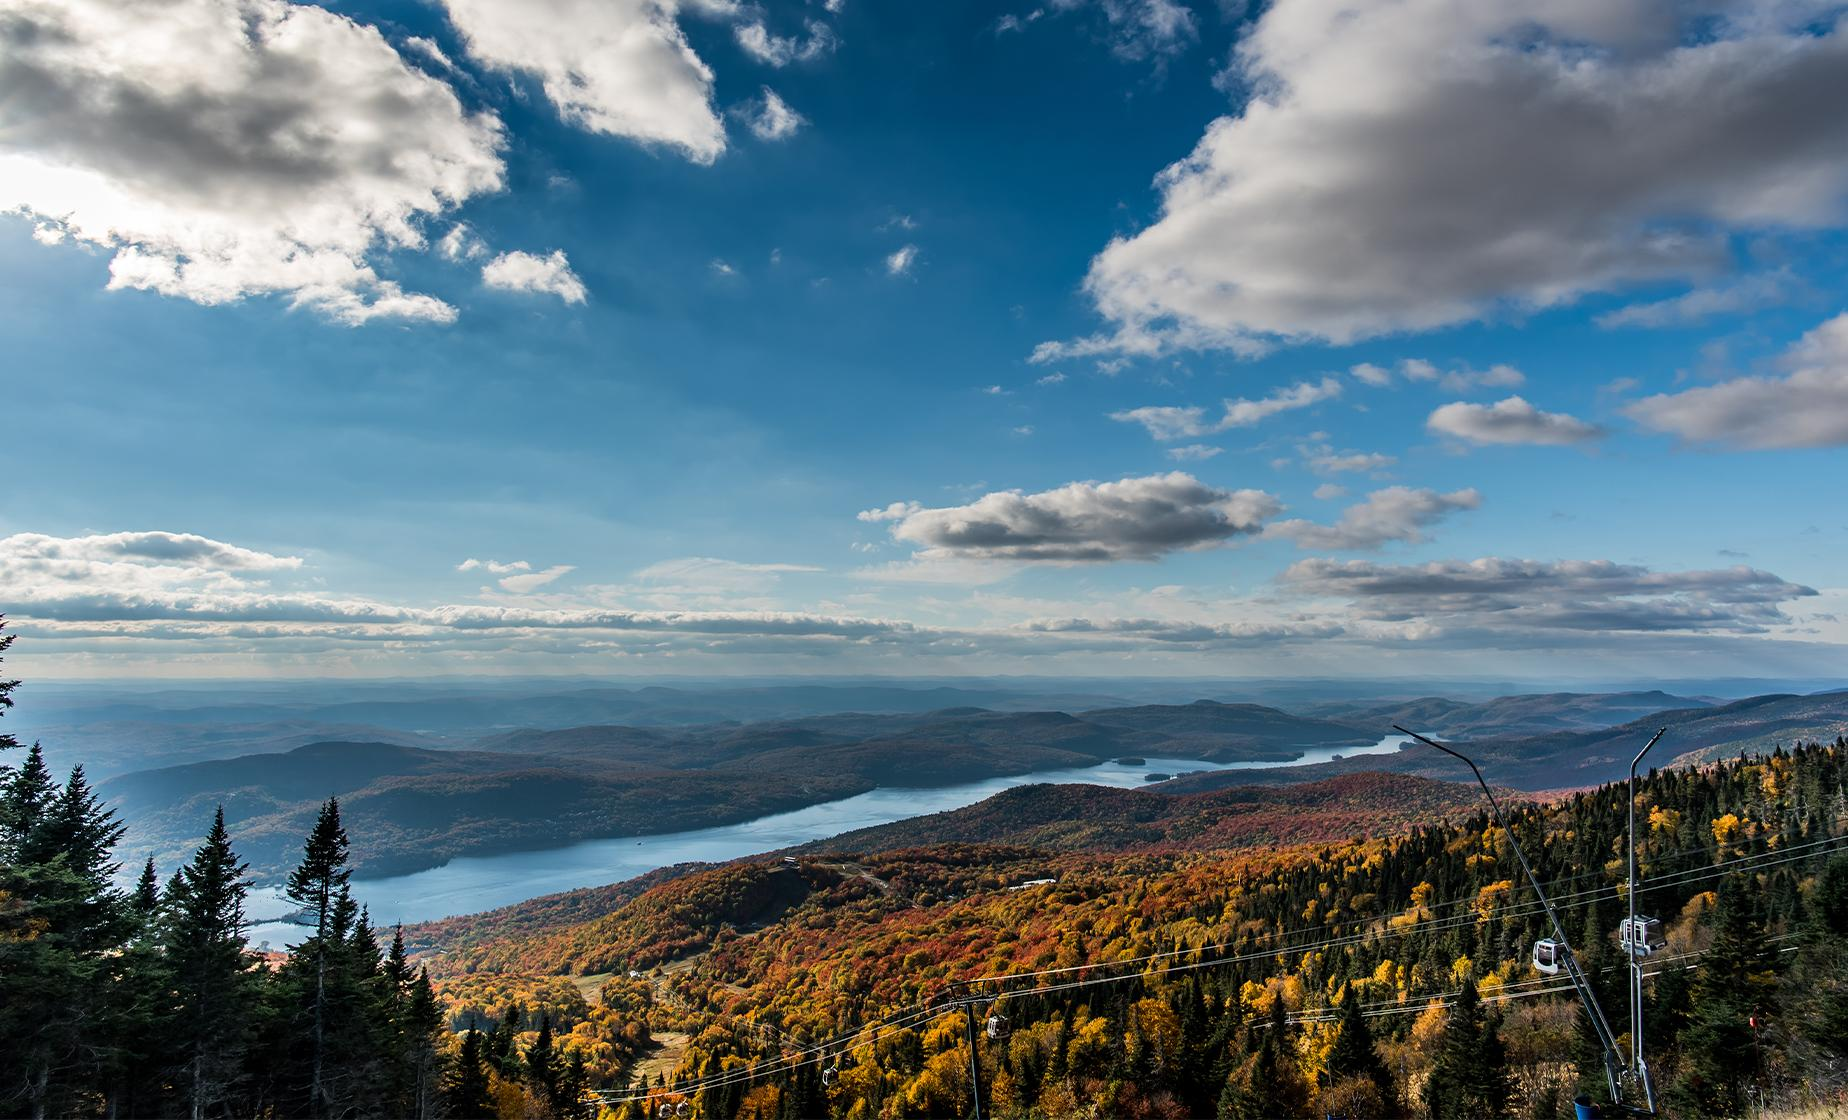 Laurentian Mountains Day Trip from Montreal (Lac des Sables, Mont St. Sauveur Village)